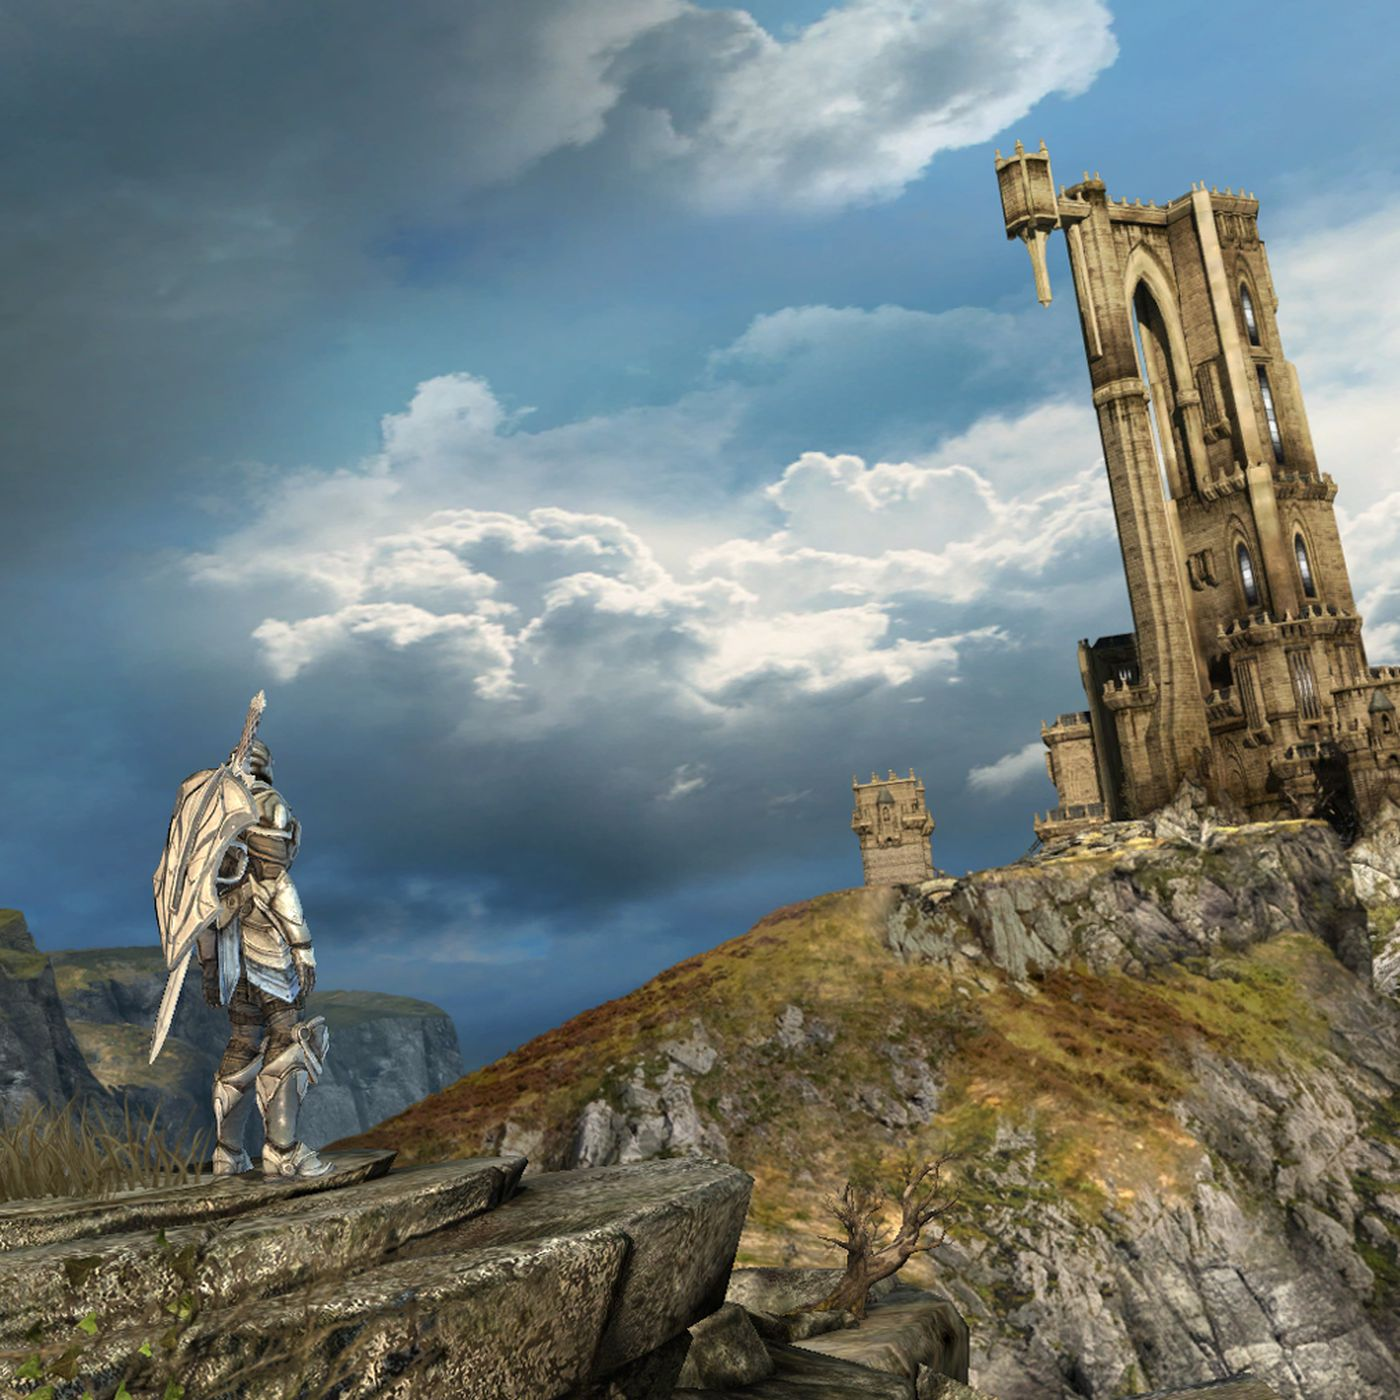 Epic removes all Infinity Blade games from the App Store - The Verge